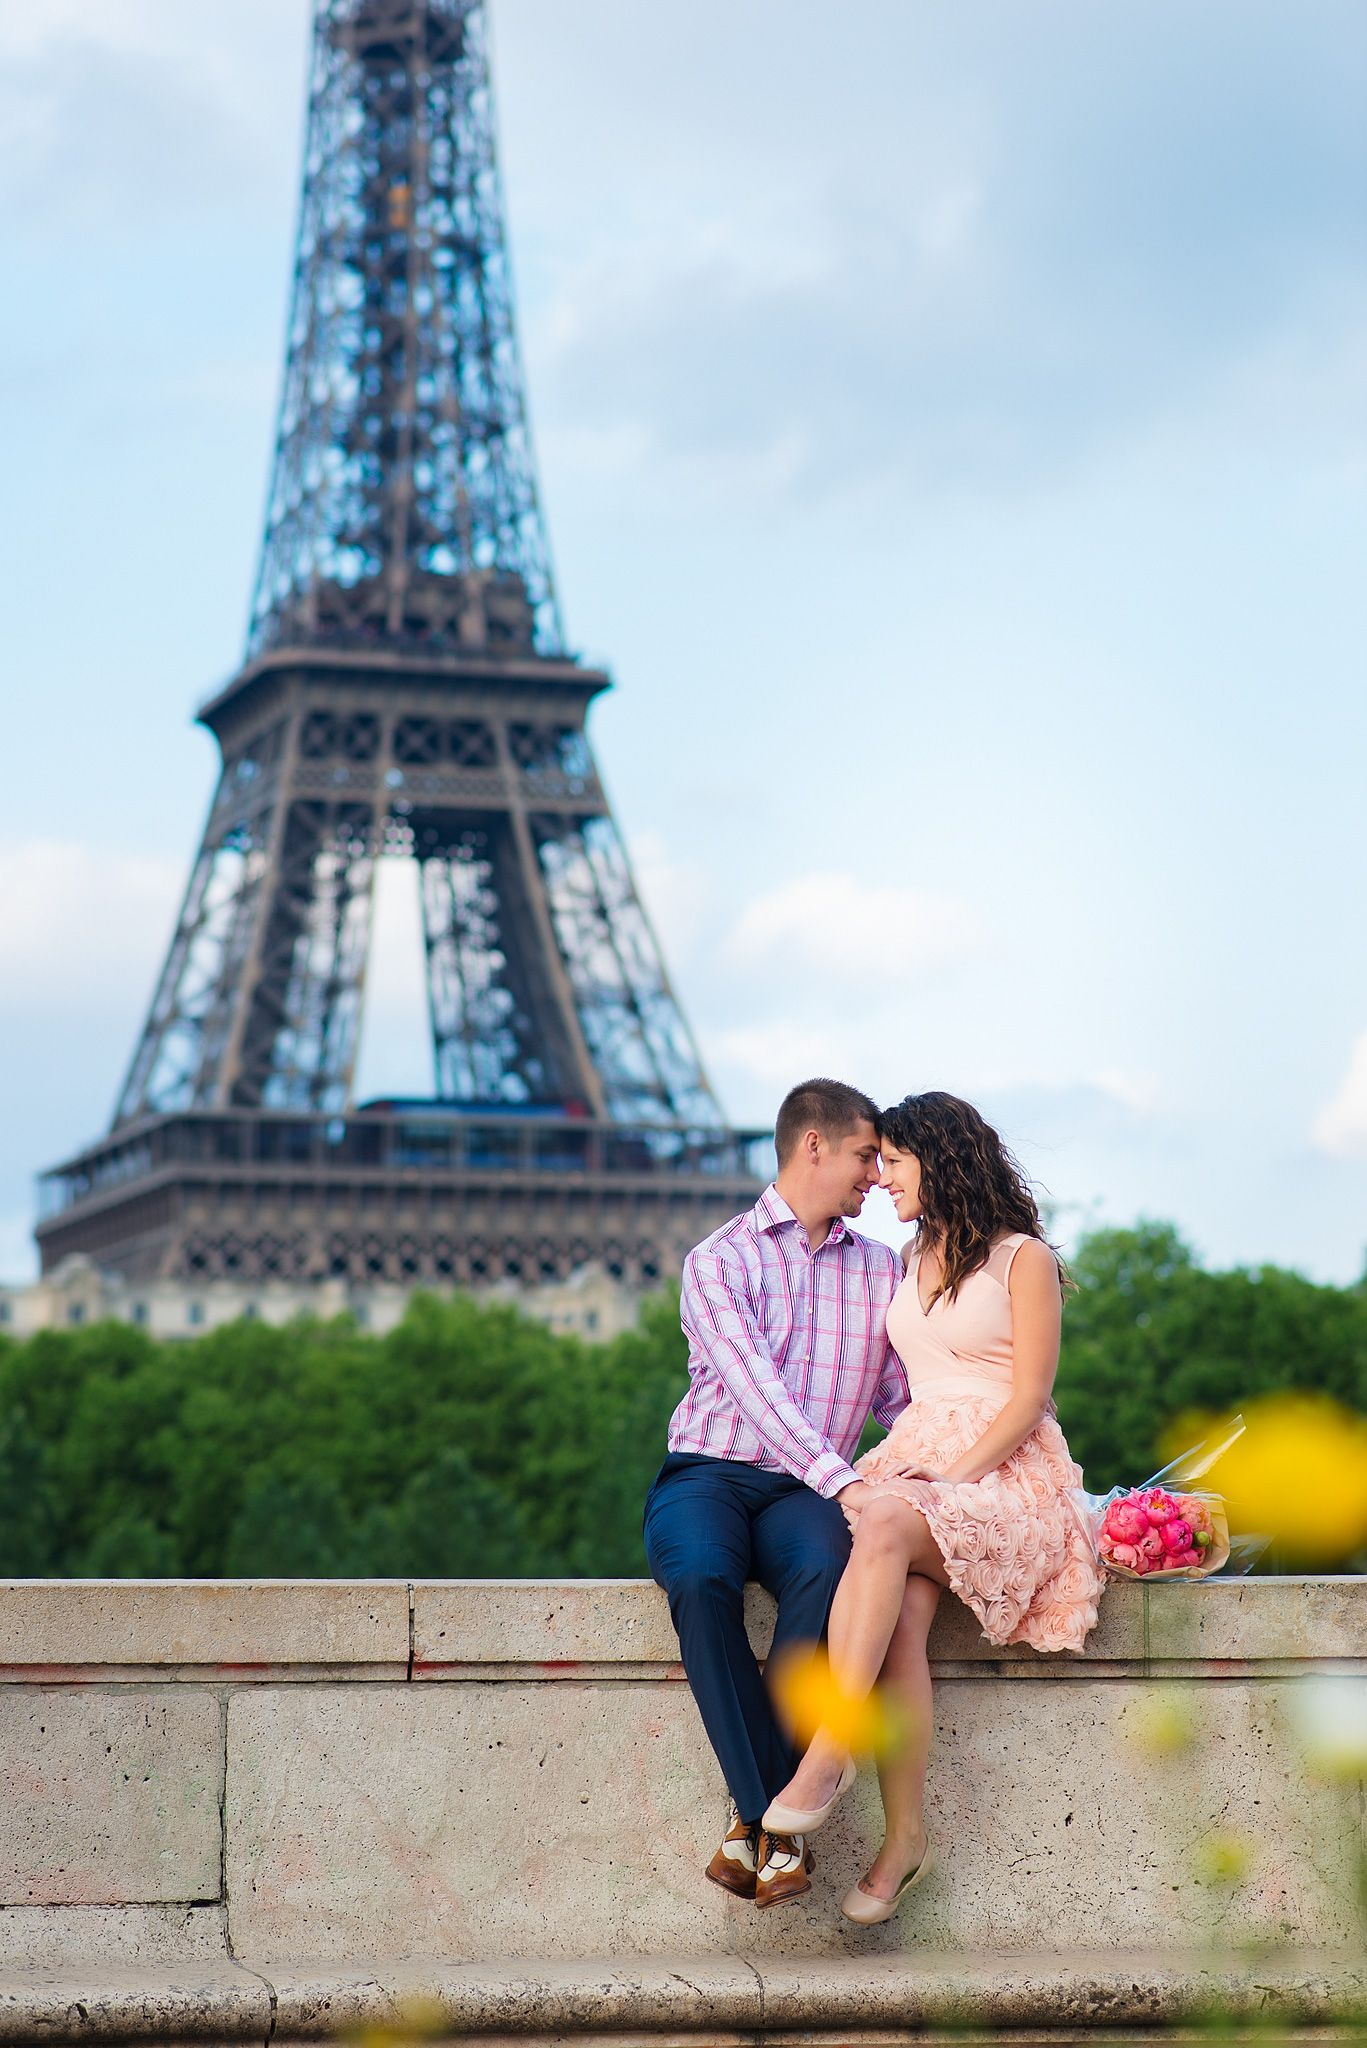 cute couple in a romantic moment in front of the eiffel tower in paris beautiful pink peonies. Black Bedroom Furniture Sets. Home Design Ideas